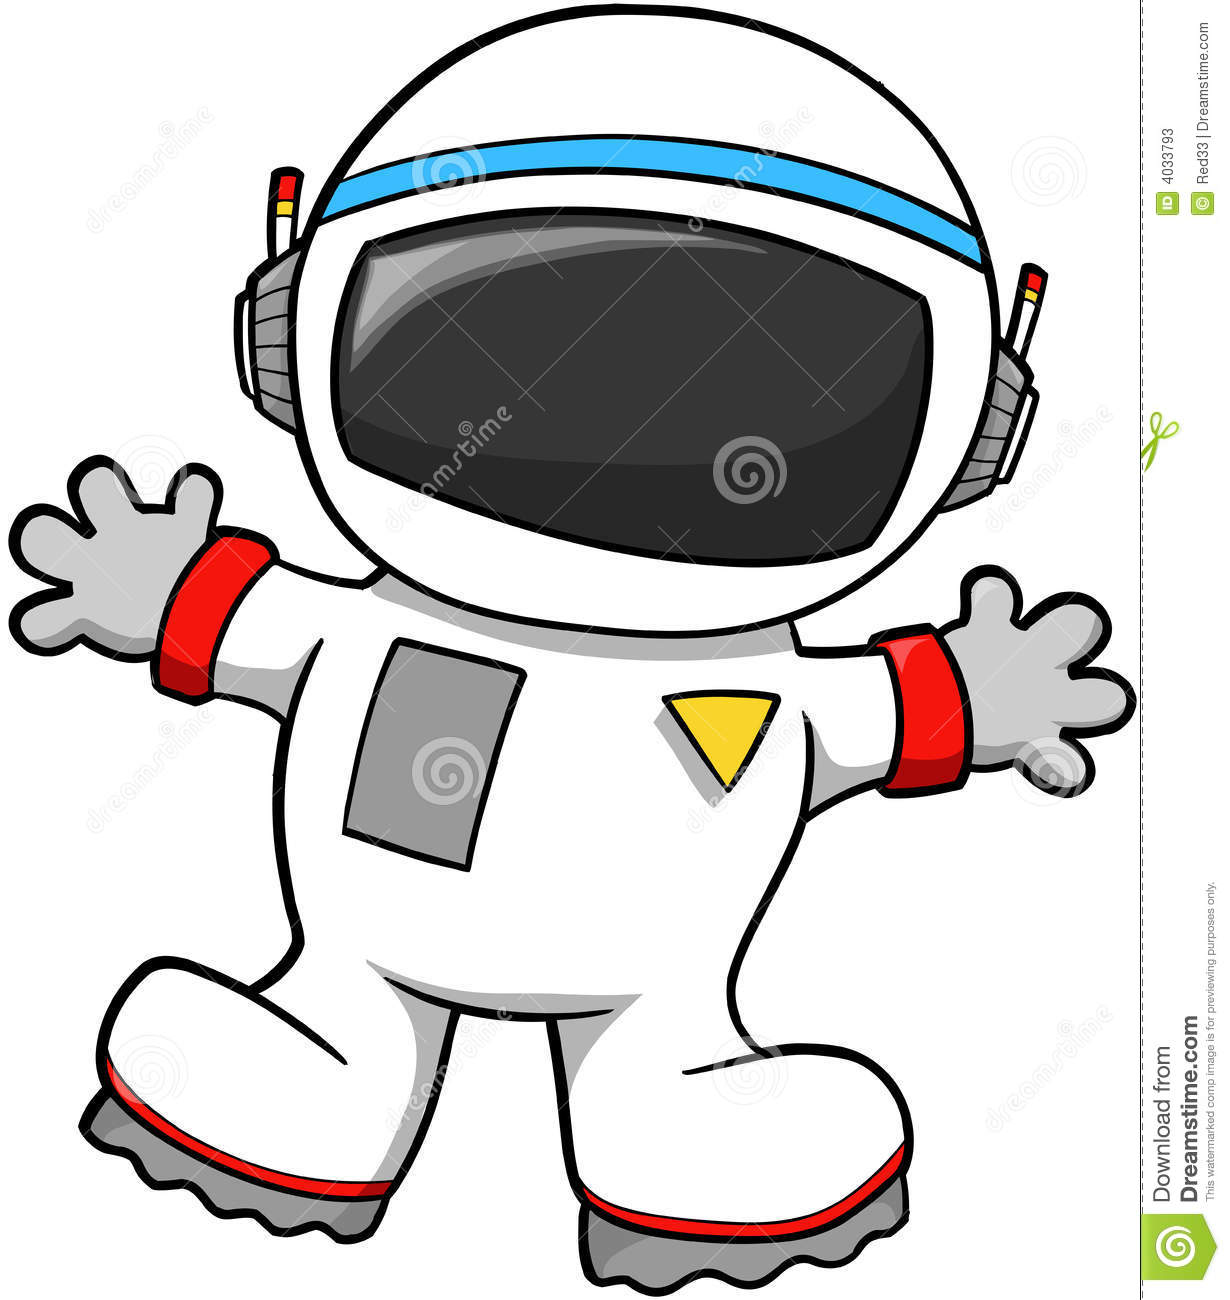 astronauts in space clipart - photo #13